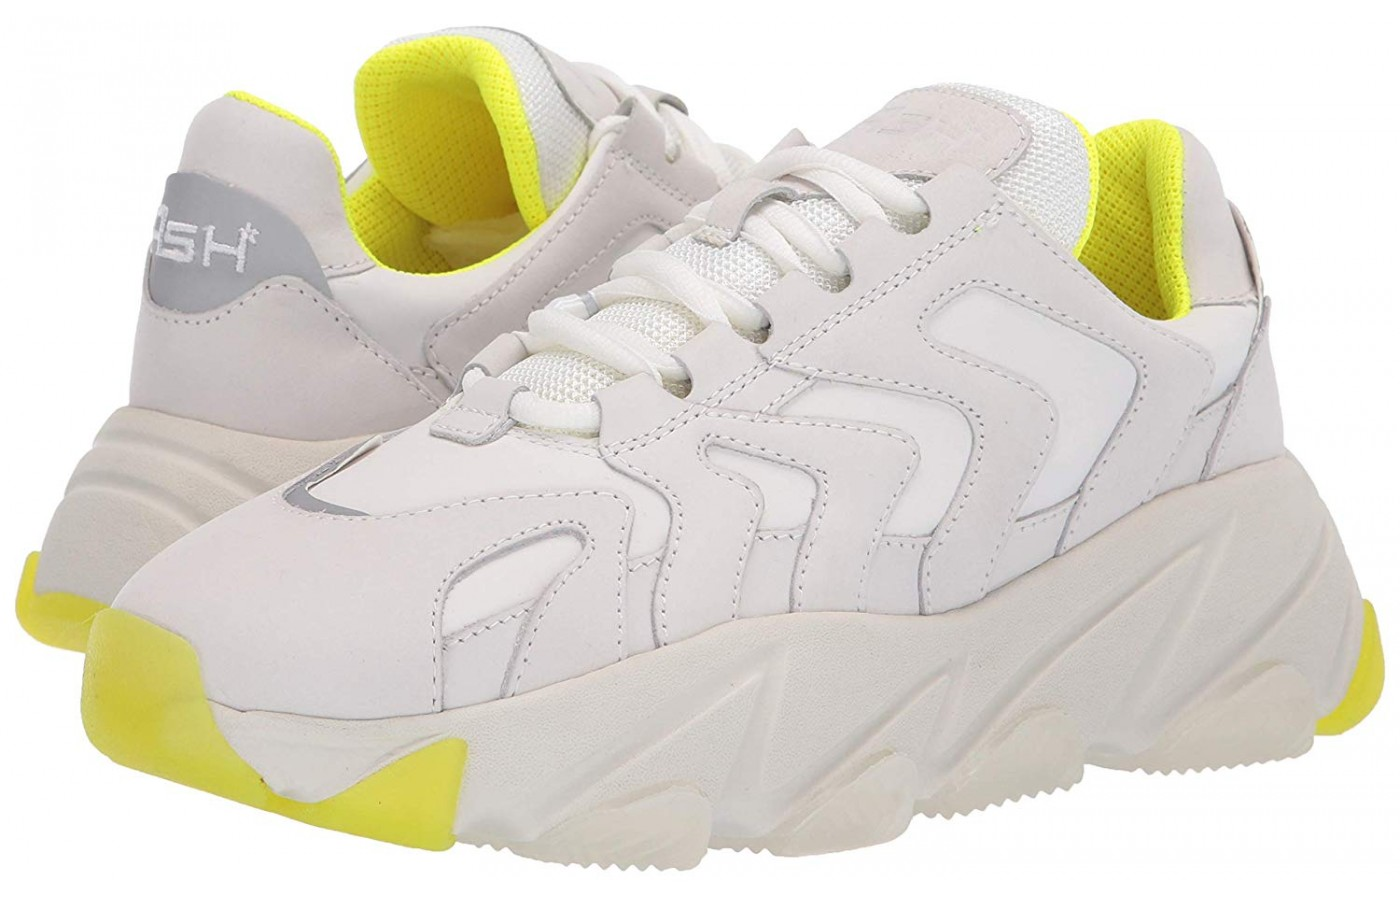 A pop of yellow accents this white pair of Extreme sneakers by Ash.